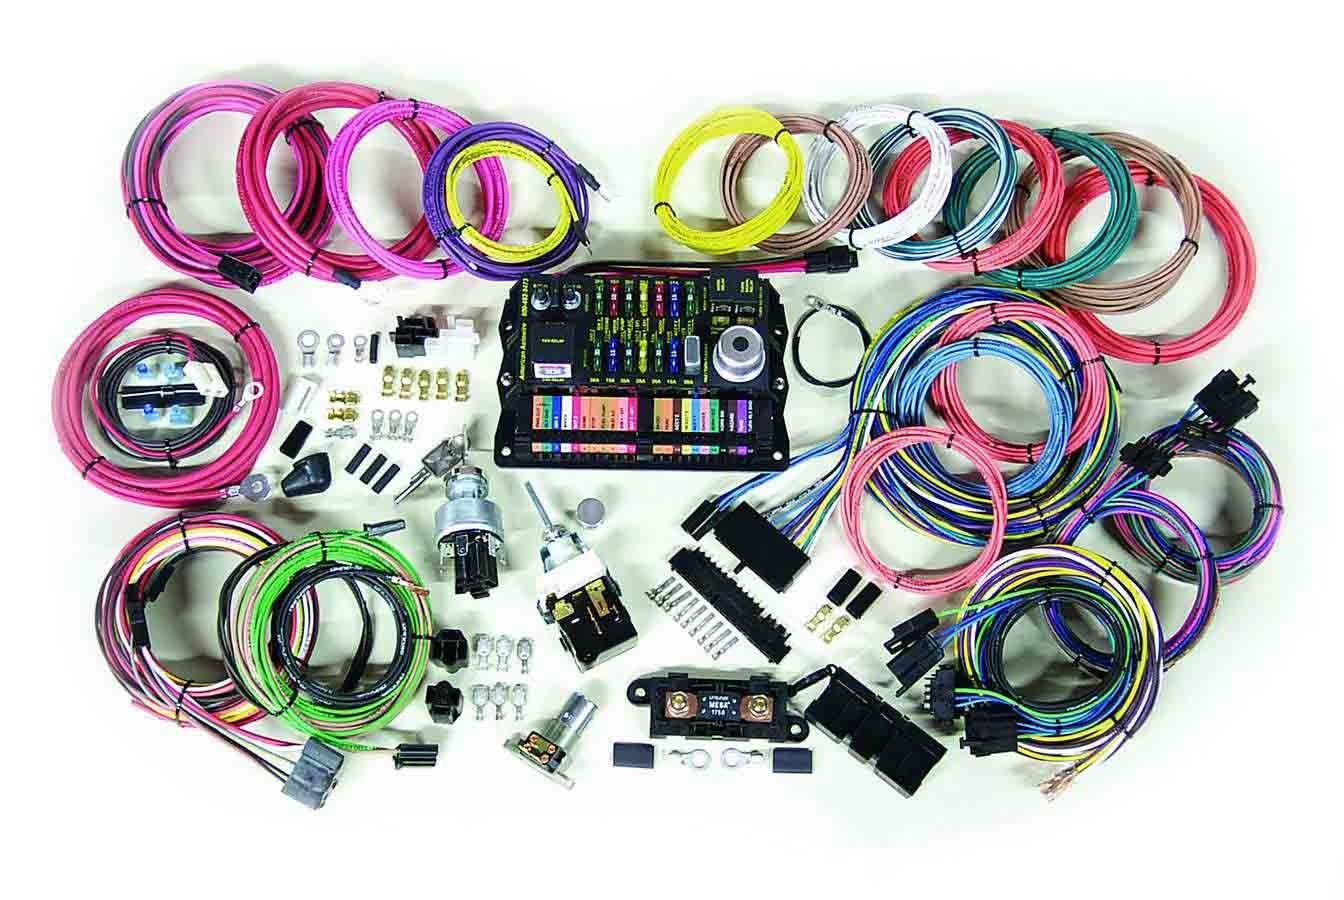 hight resolution of details about american autowire wiring system 22 power outlets gm color code kit p n 500695